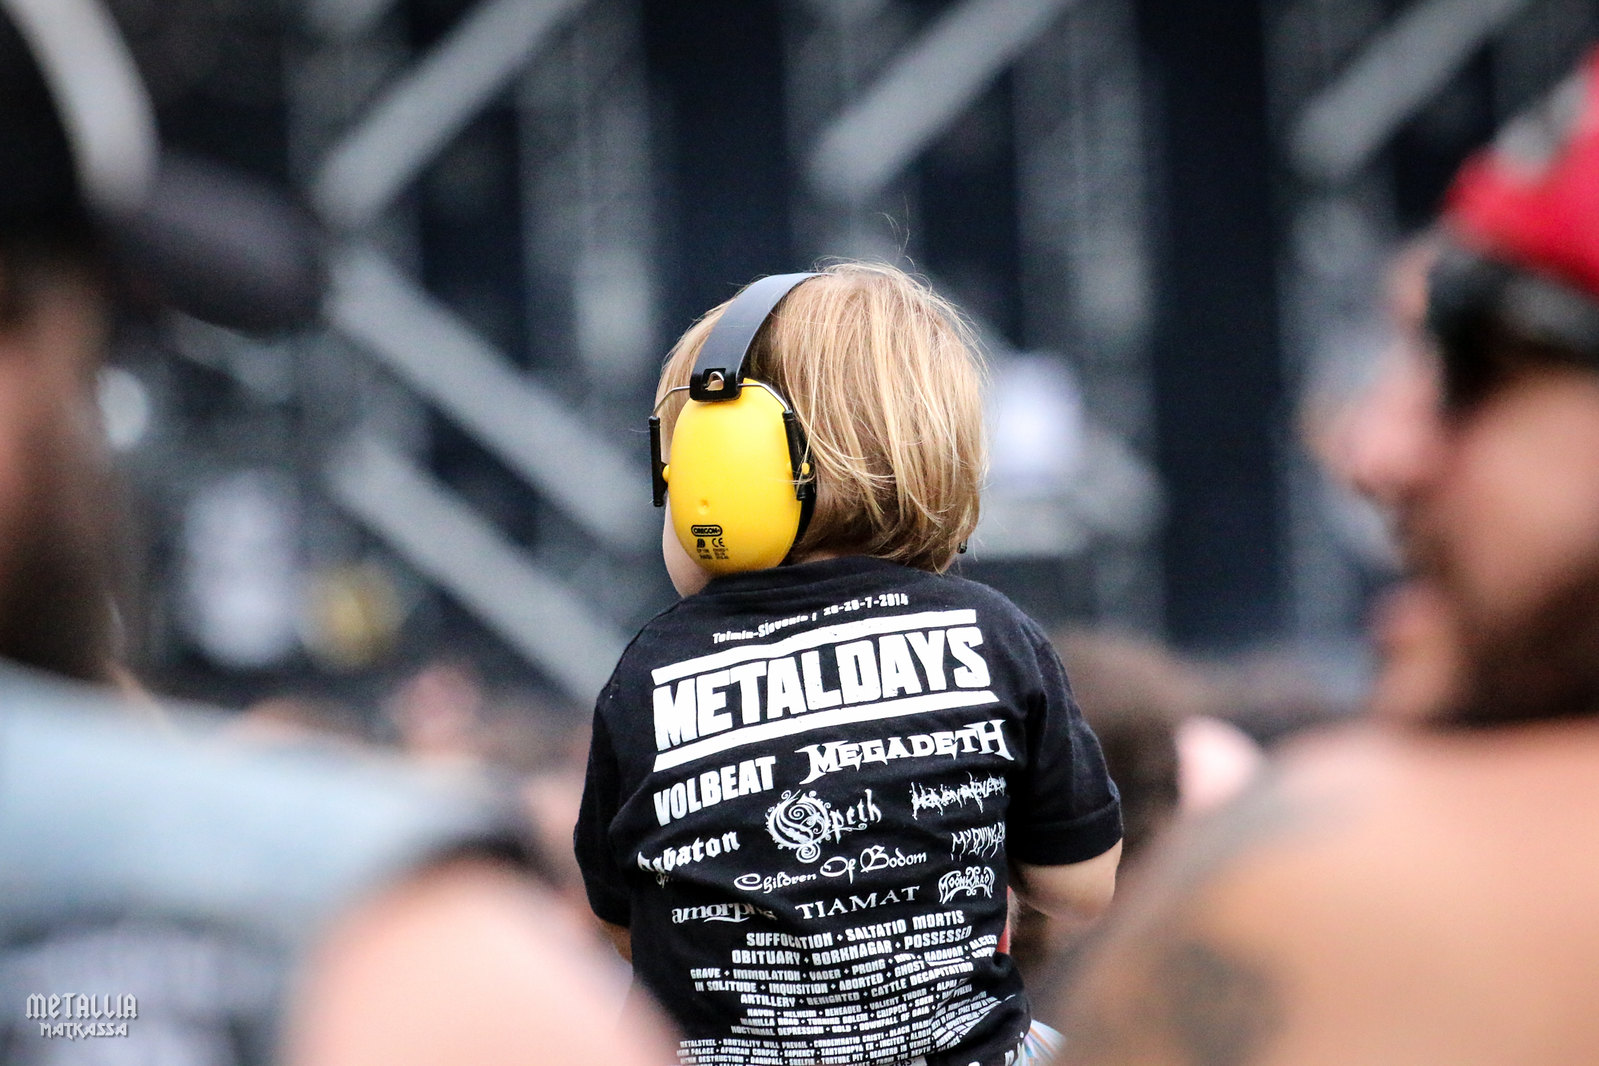 metaldays, metaldays 2016, metalcamp, metal baby